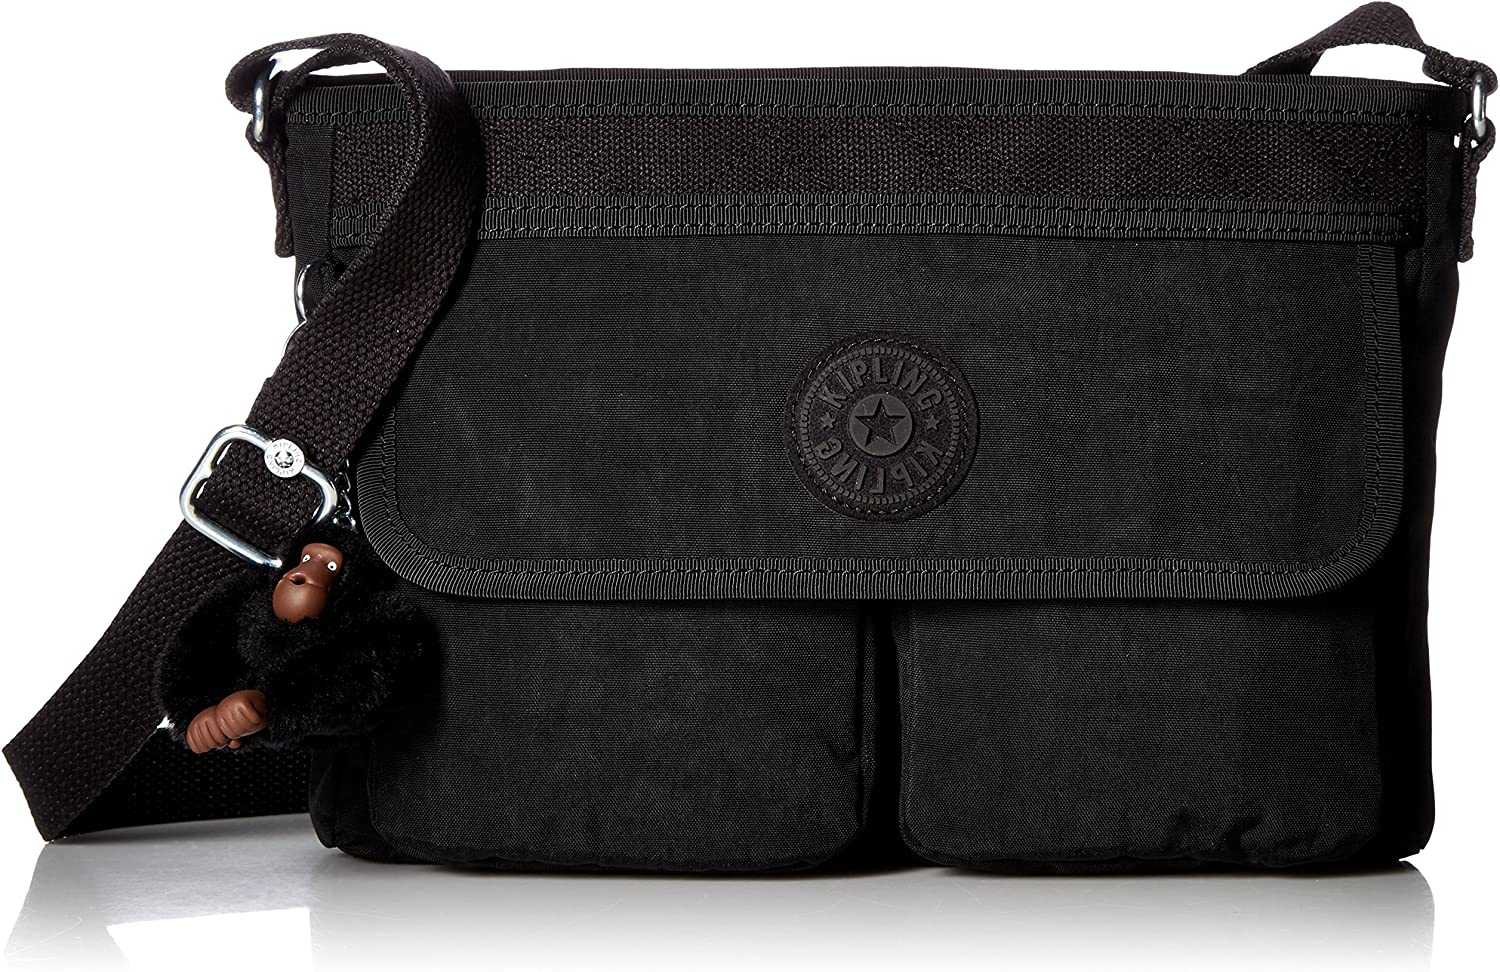 Kipling Angie Solid Congreenible Crossbody Bag, Black